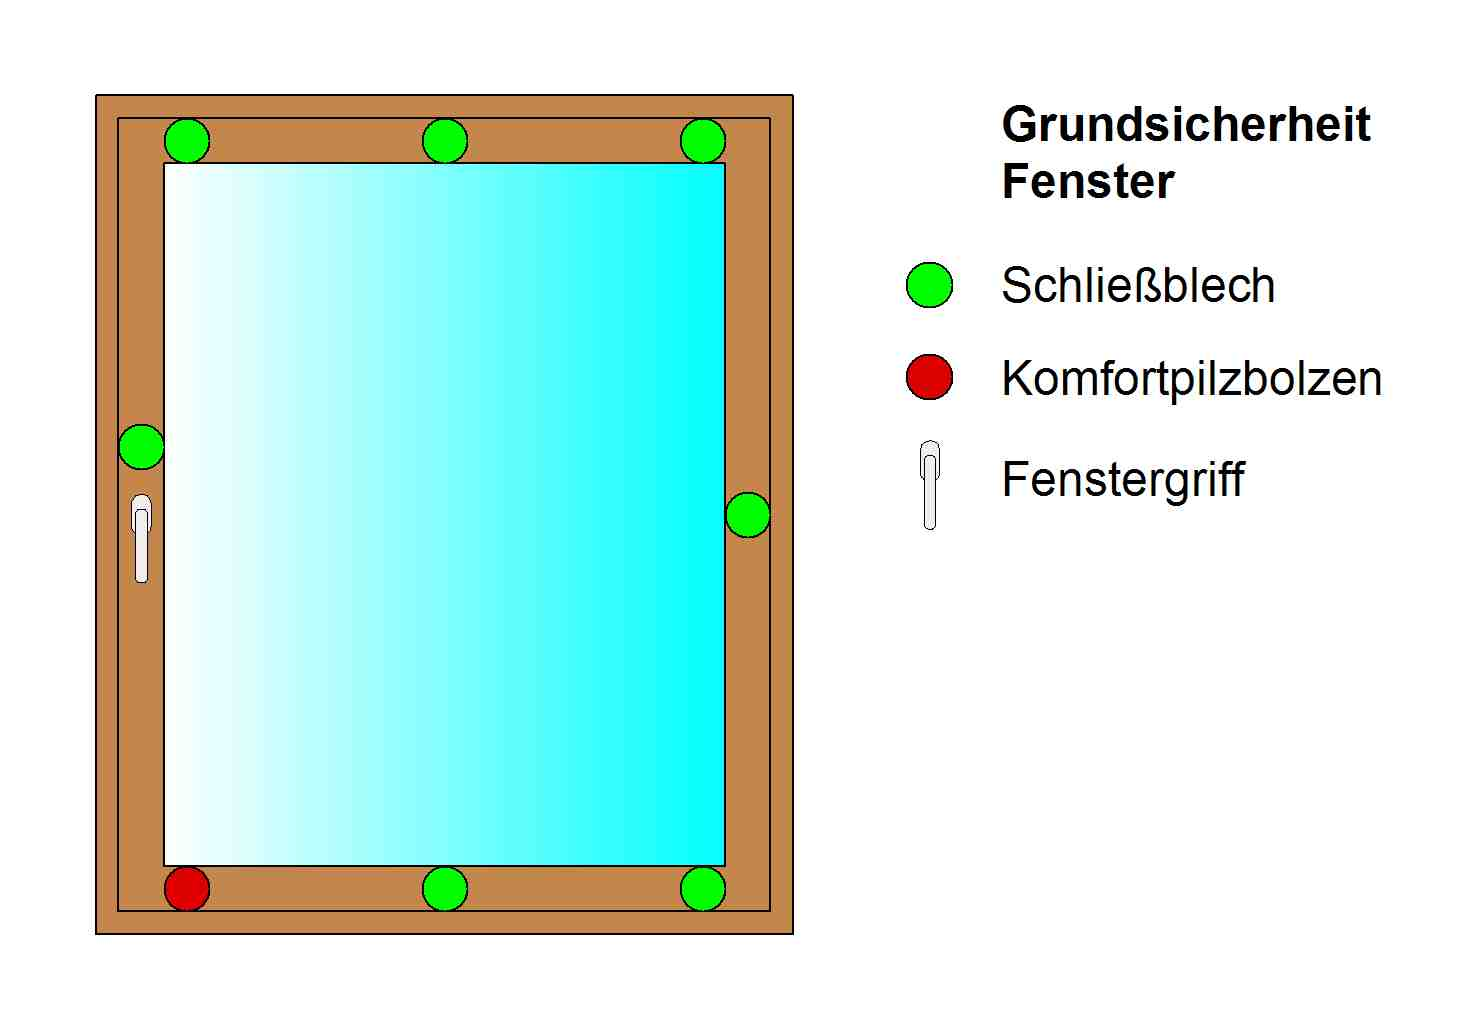 Fenster_Grundsicherheit